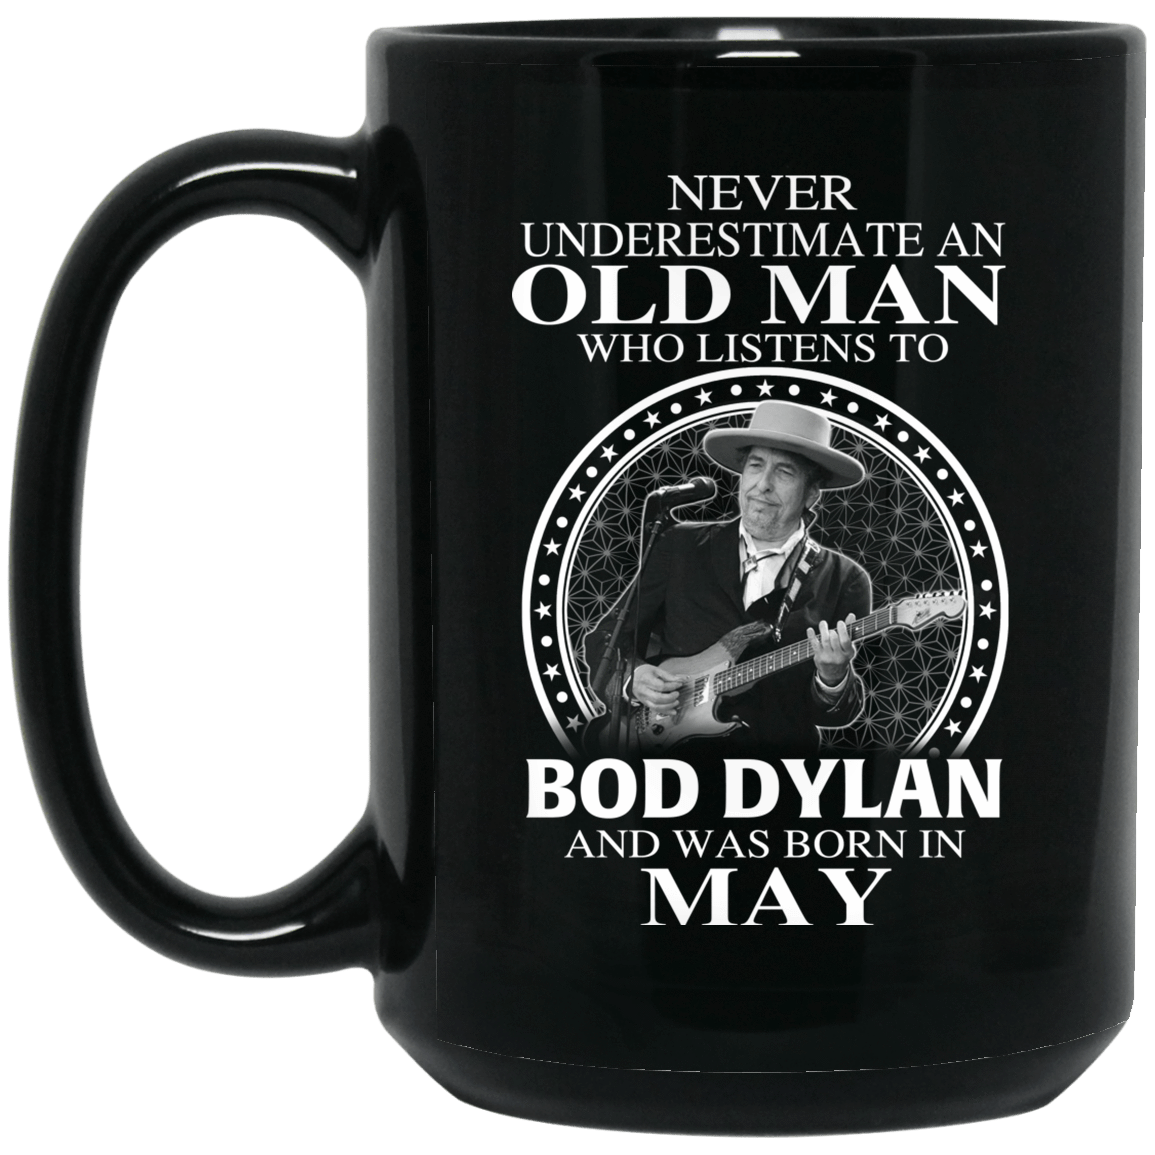 An Old Man Who Listens To Bob Dylan And Was Born In May Mug 1066-10182-76154388-49311 - Tee Ript